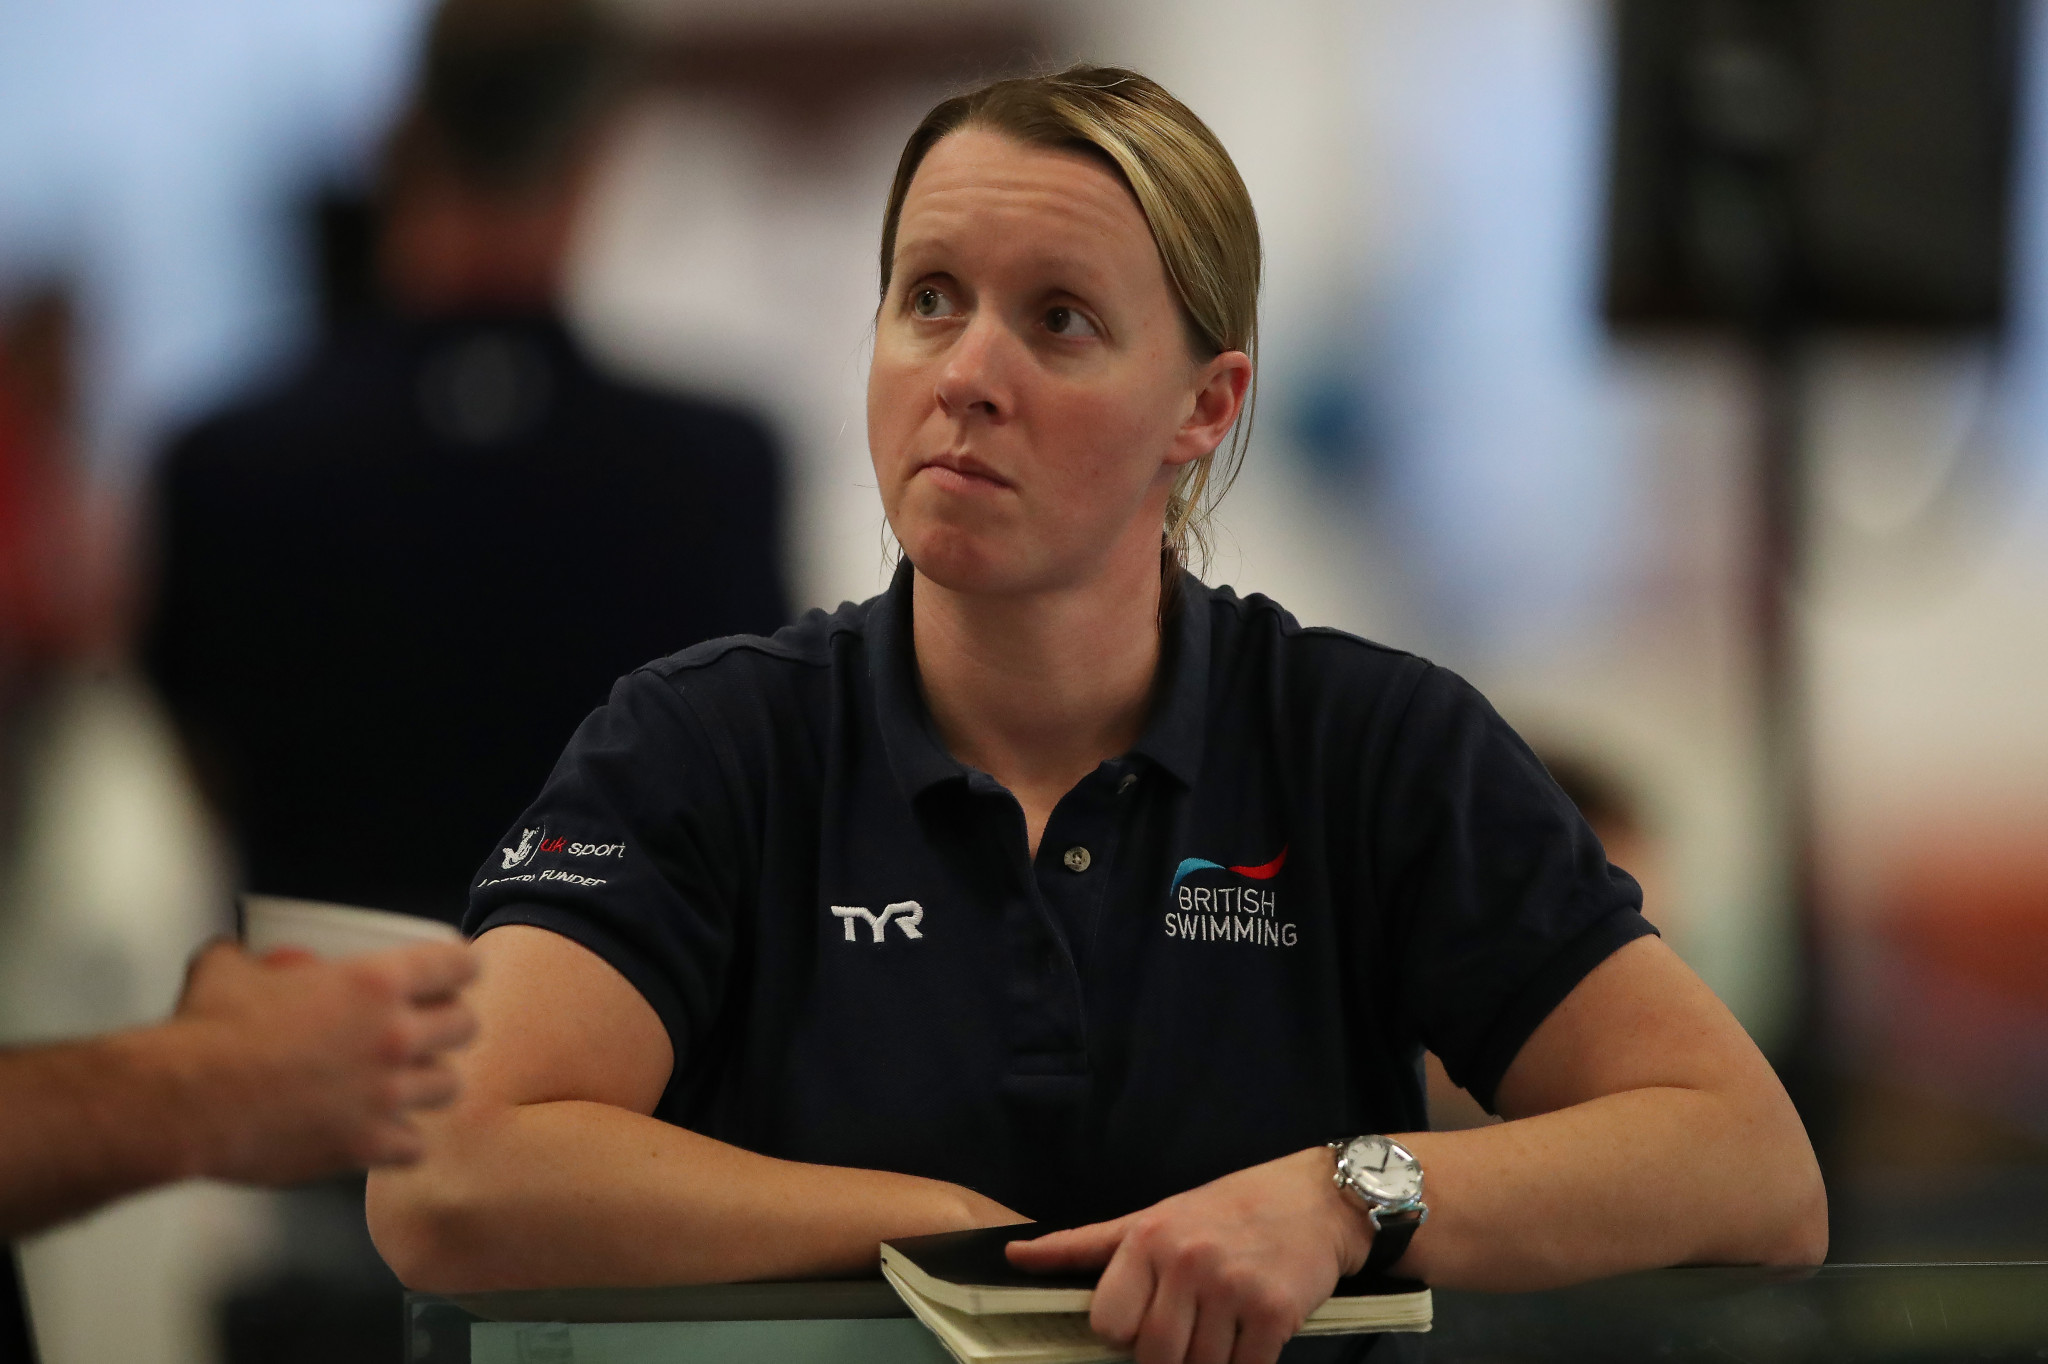 UK Sport has announced a new leadership programme to double the representation of female coaches by Paris 2024 ©Getty Images